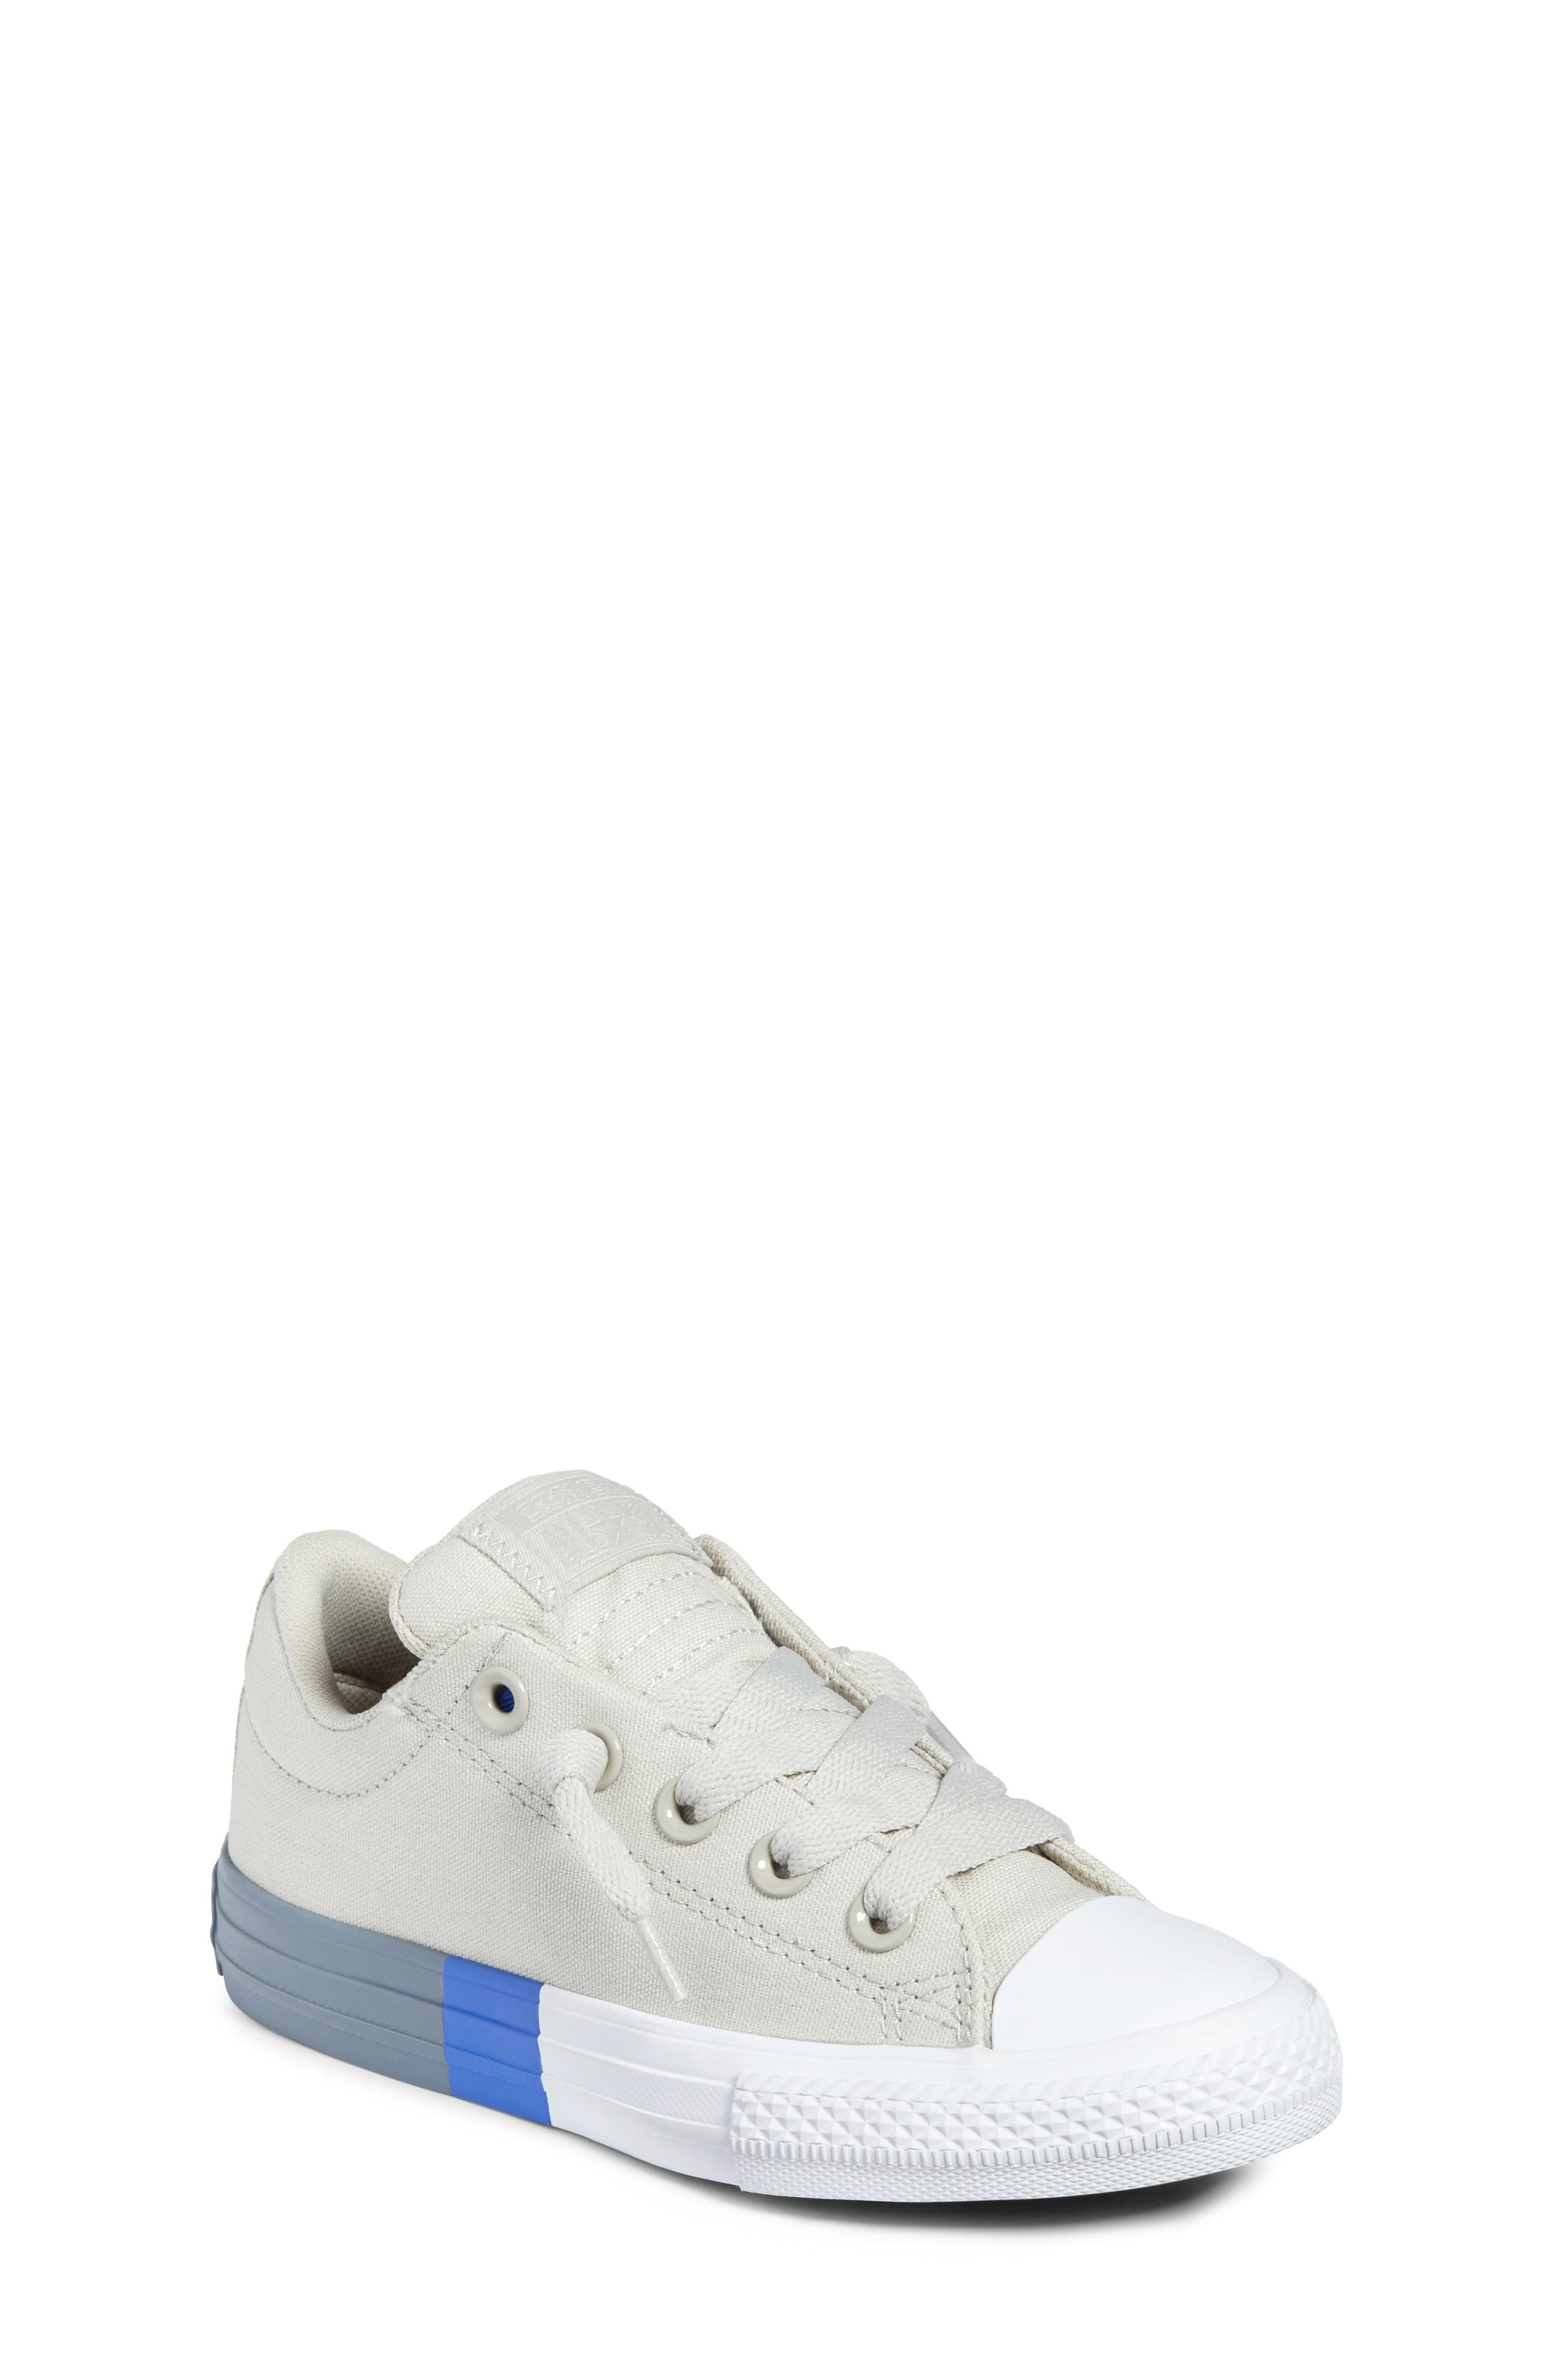 Chuck Taylor<sup>®</sup> All Star<sup>®</sup> Colorblock Street Sneaker,                         Main,                         color, 081